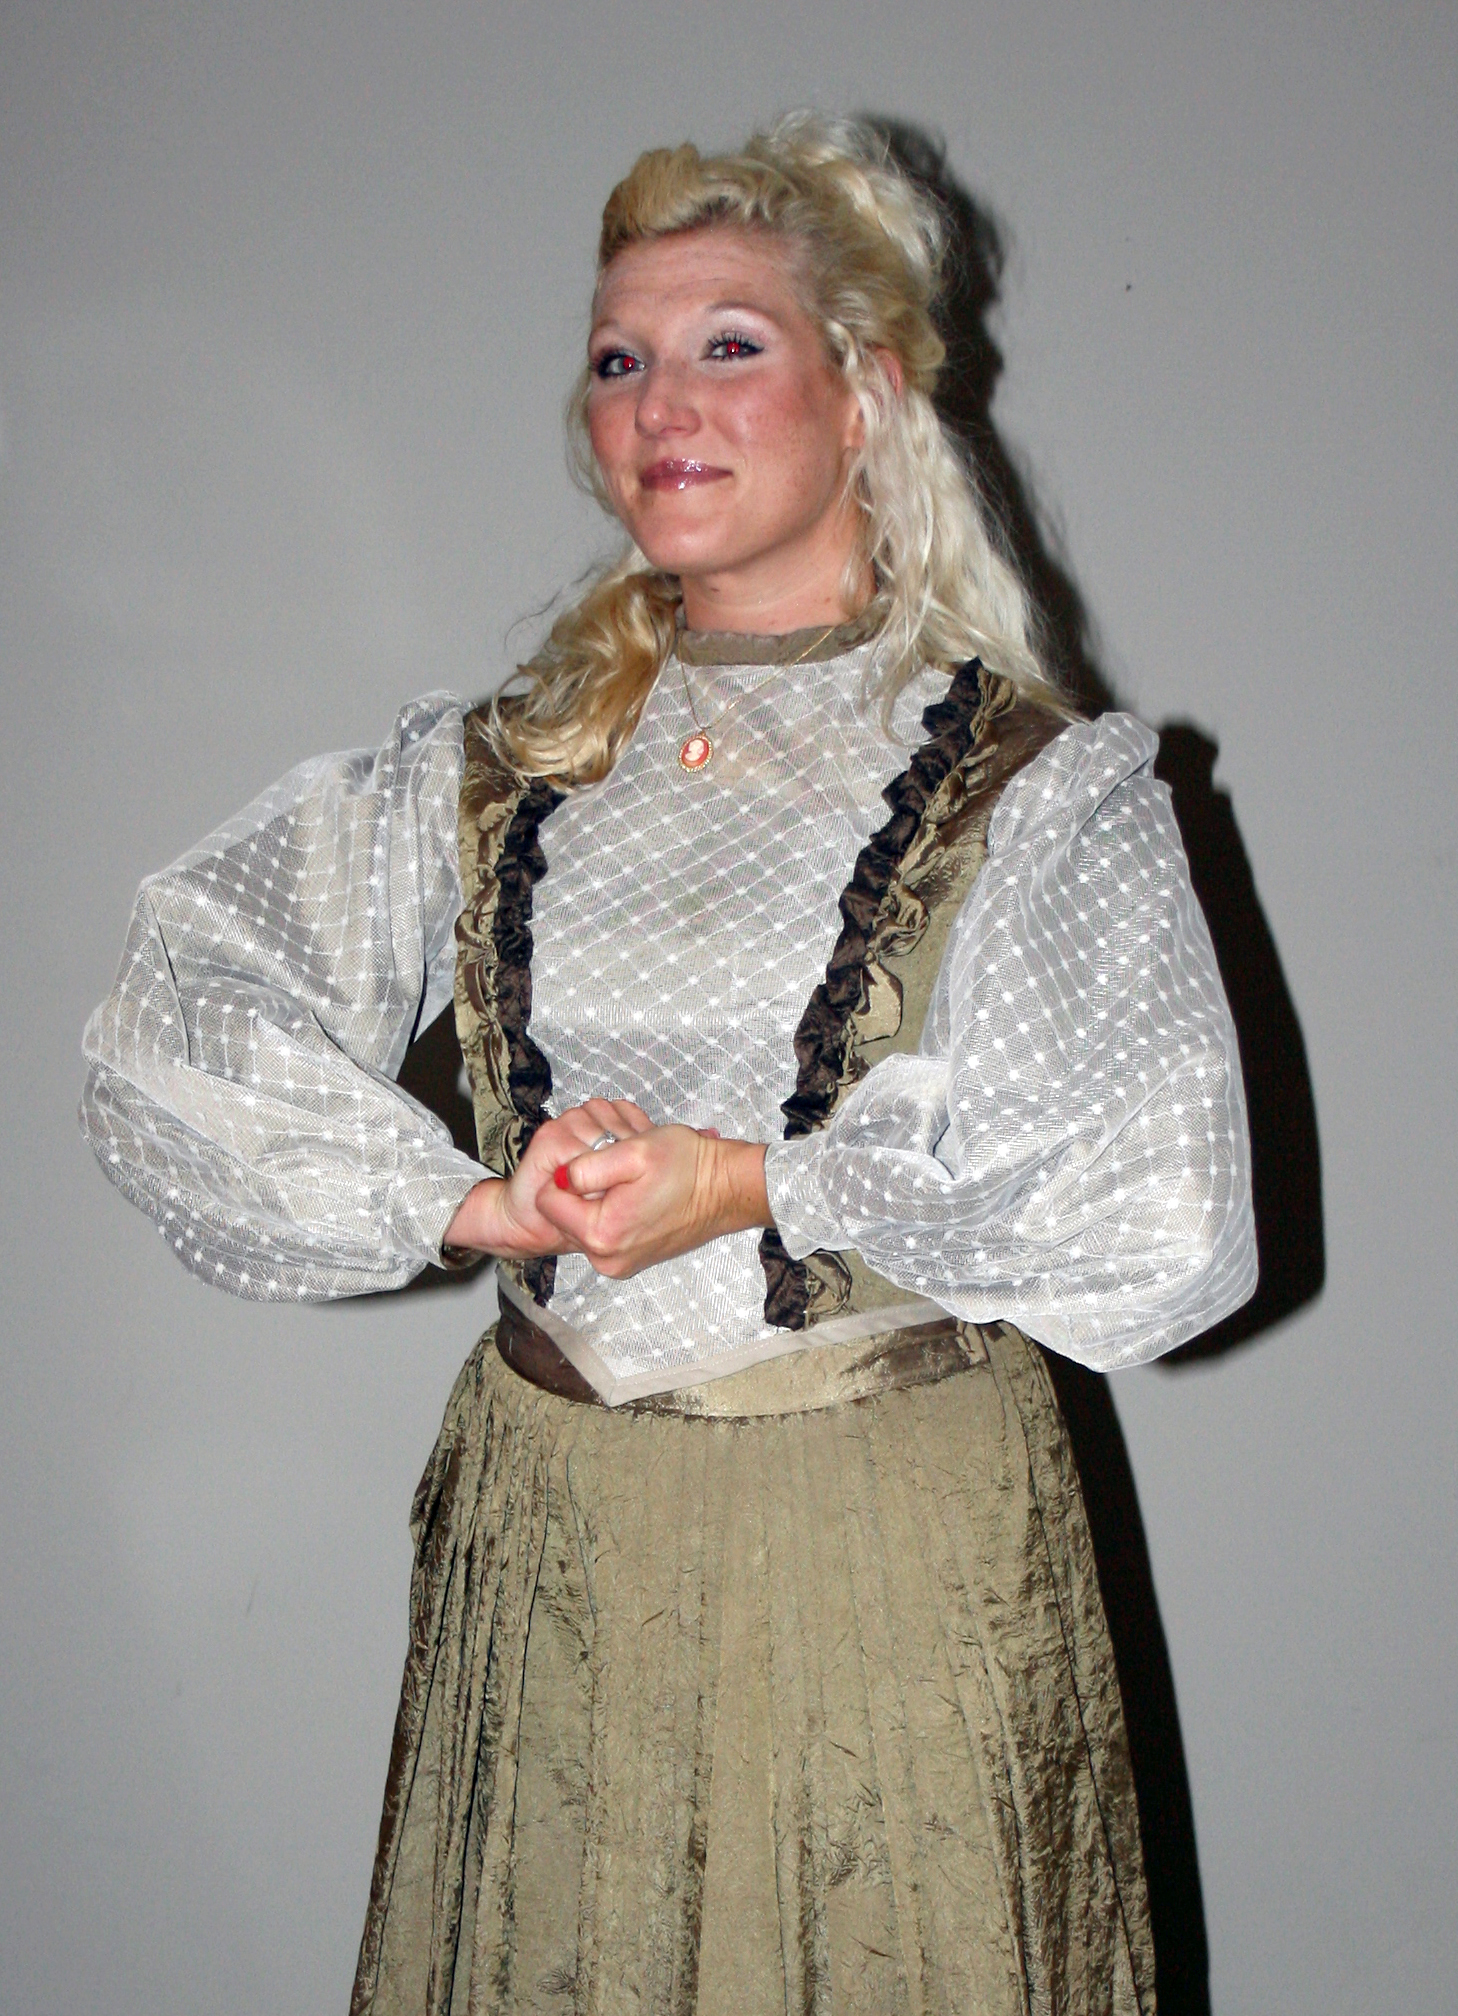 Renee Zelenski as Prudence Prissywood